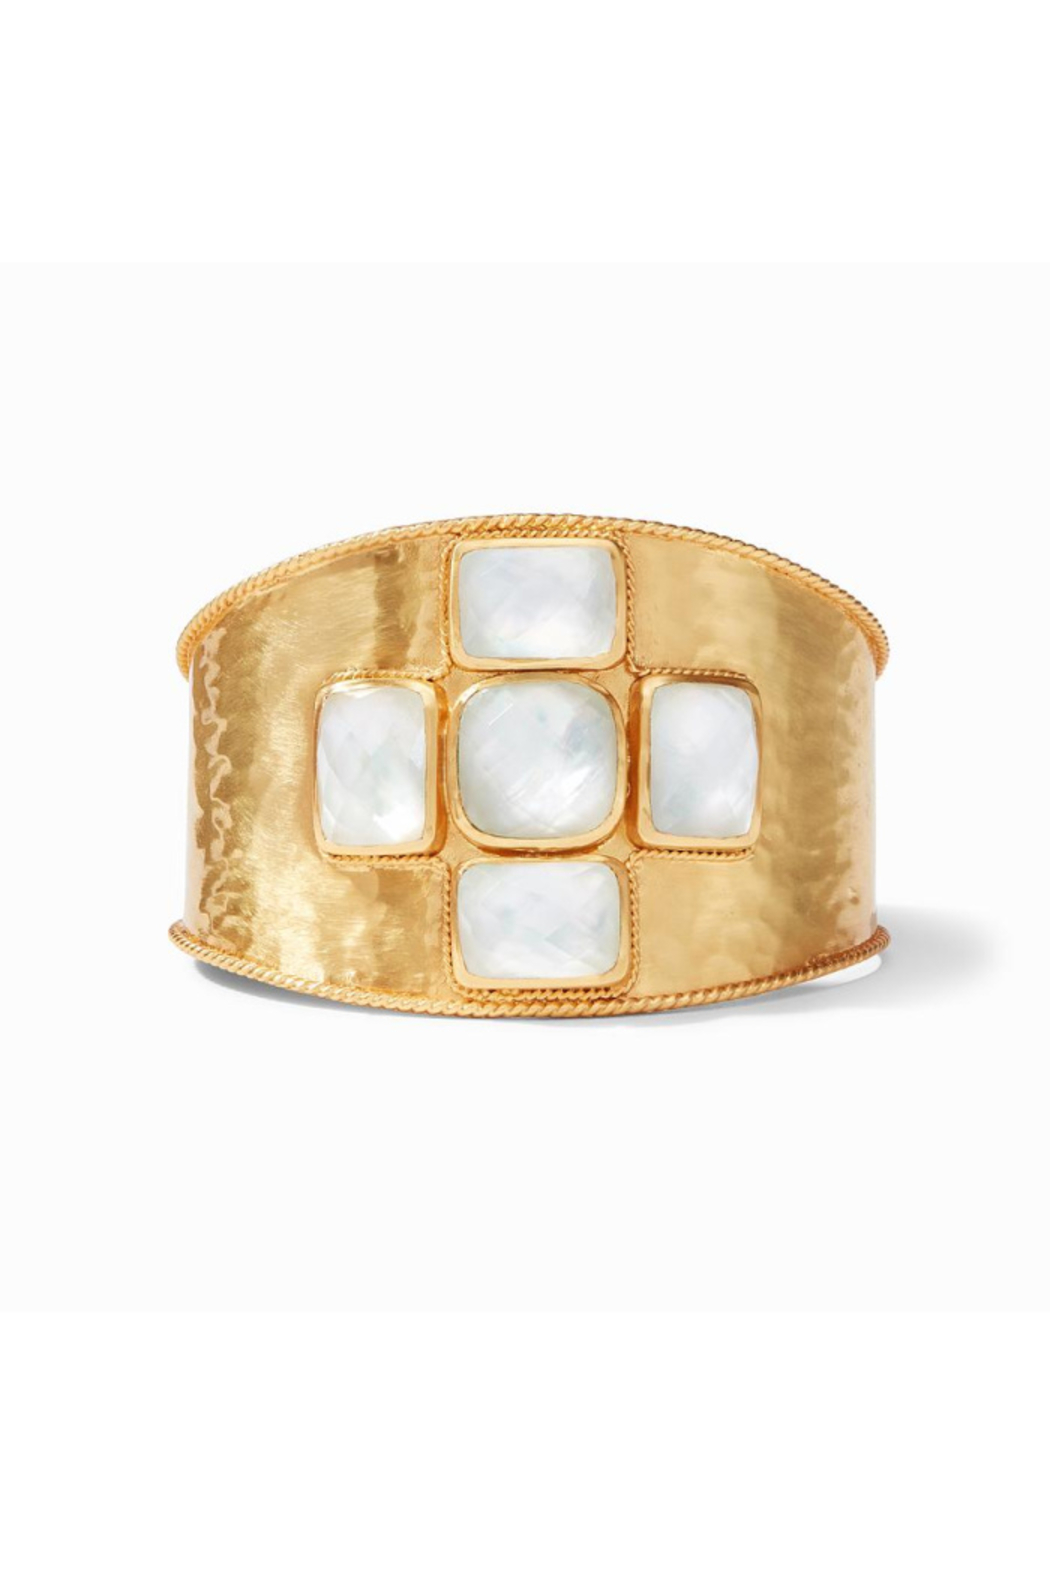 Julie Vos Savoy Cuff Gold Iridescent Clear Crystal - Main Image